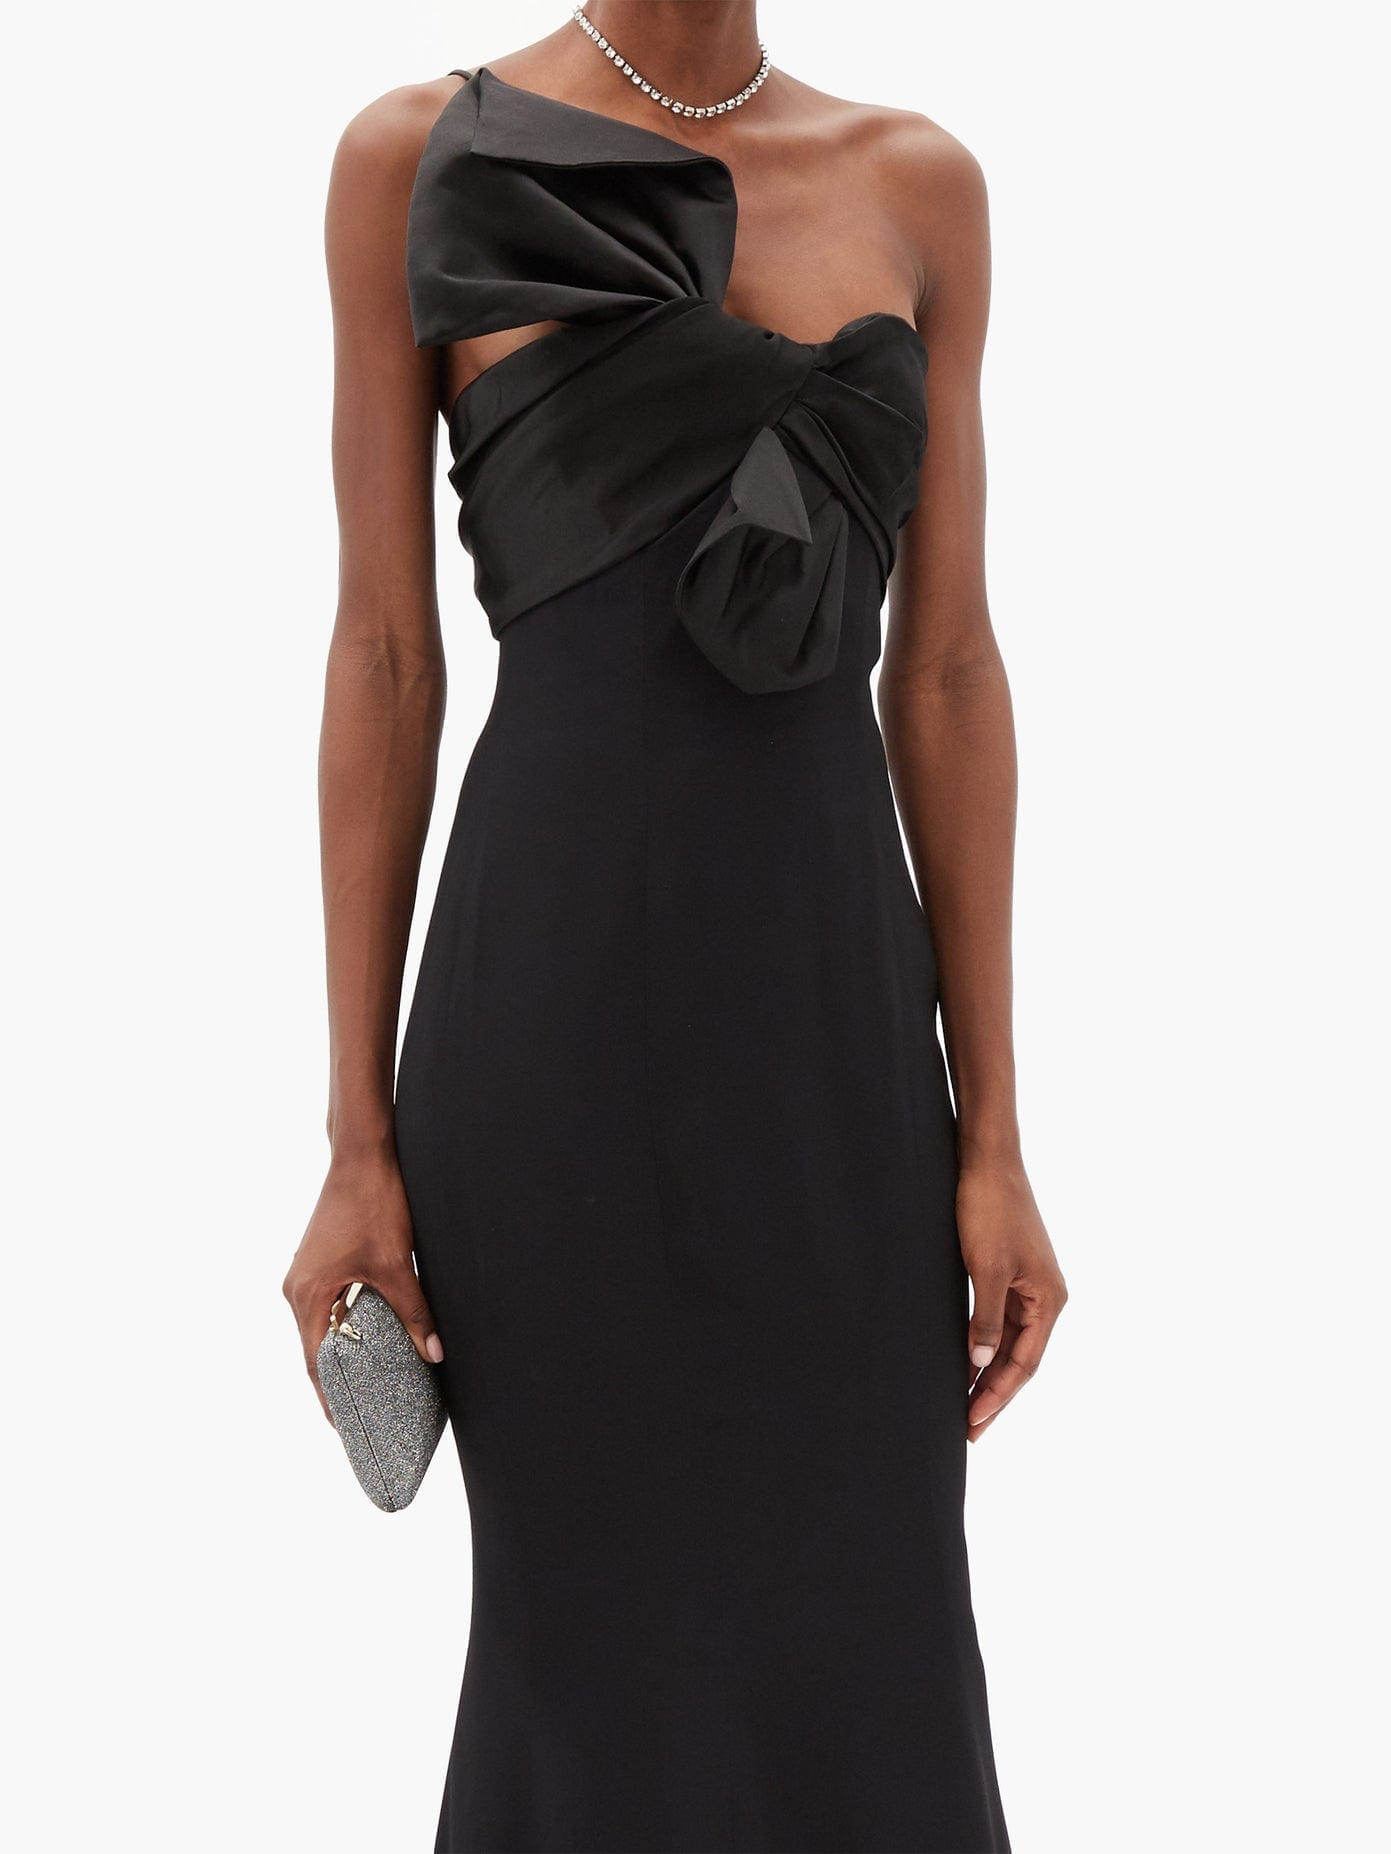 ALEXANDRE VAUTHIER Bow-front One-shoulder Satin-crepe Dress